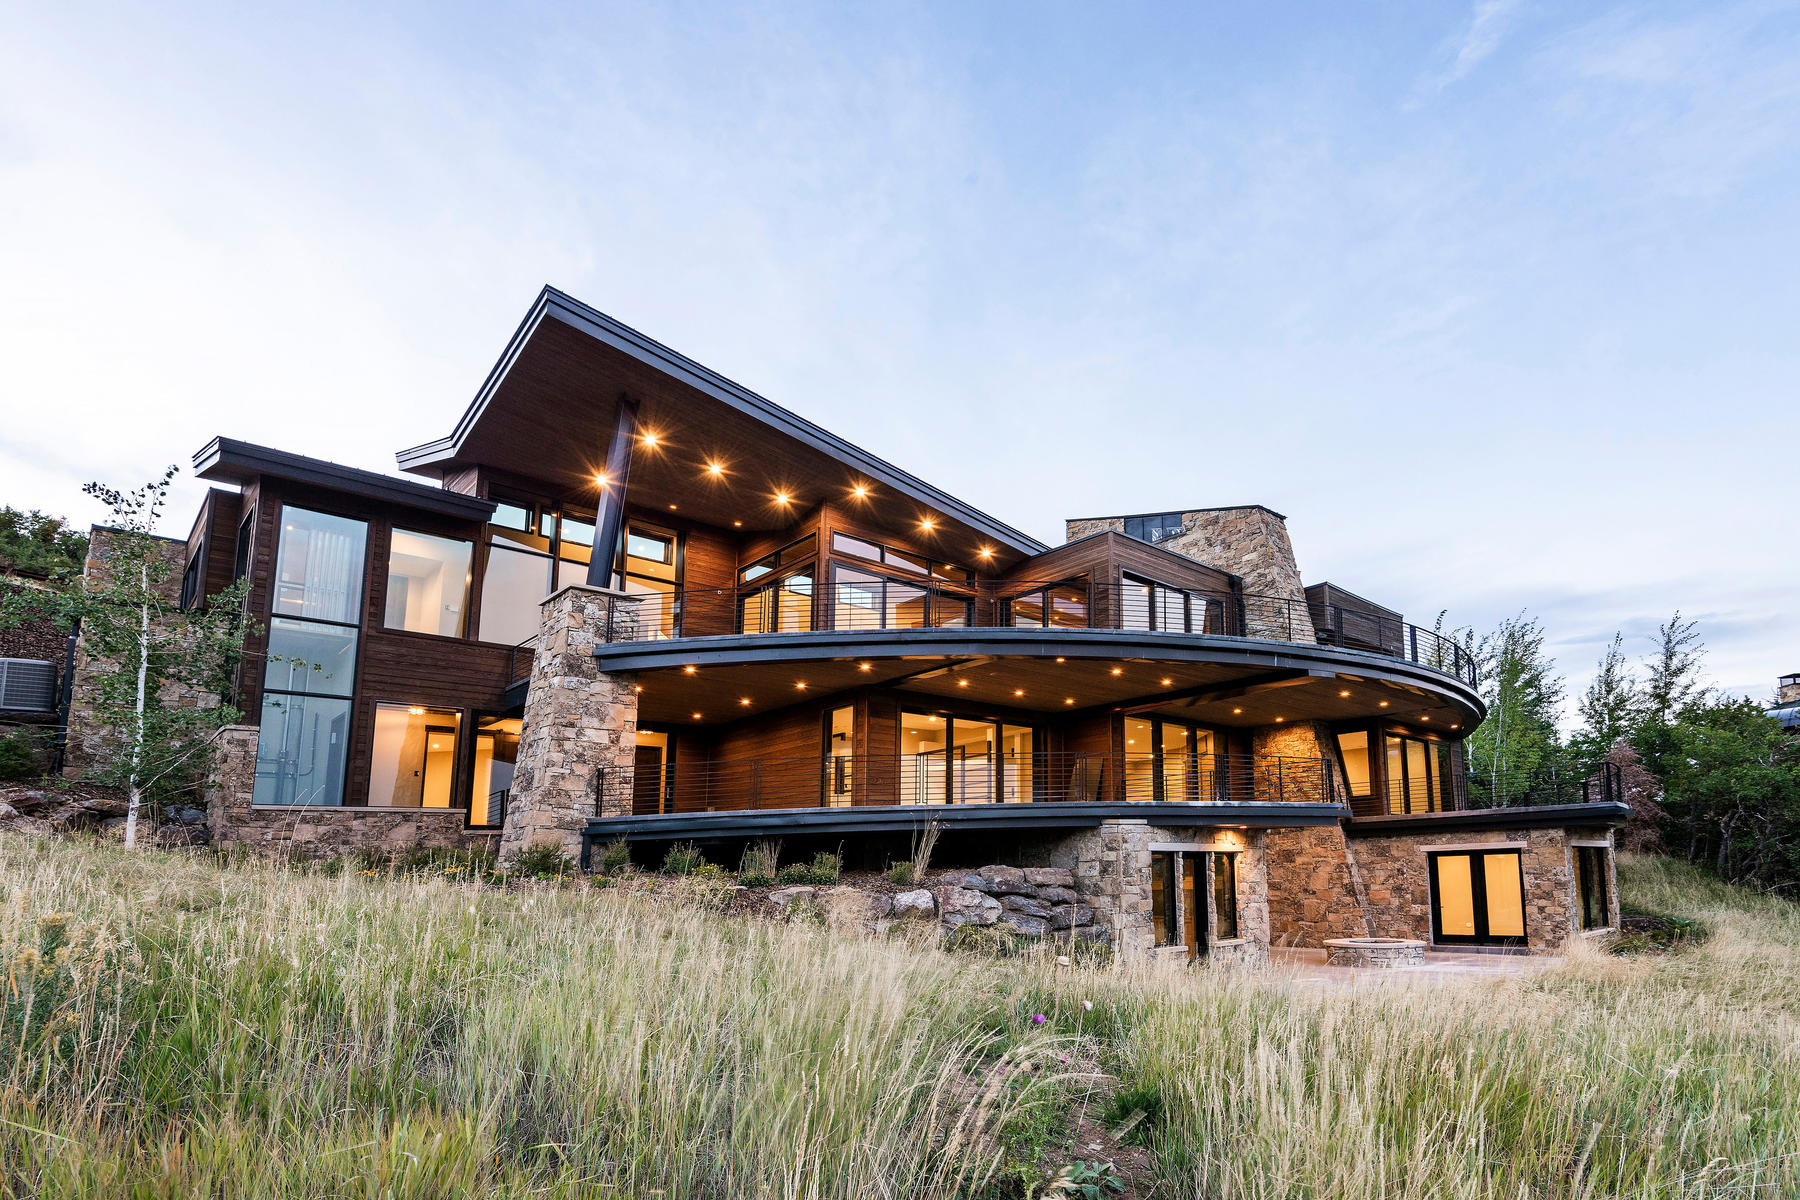 Single Family Home for Active at Stunning Ski-In Ski-Out New Construction with Panoramic Views 3007 Deer Crest Estates Park City, Utah 84060 United States